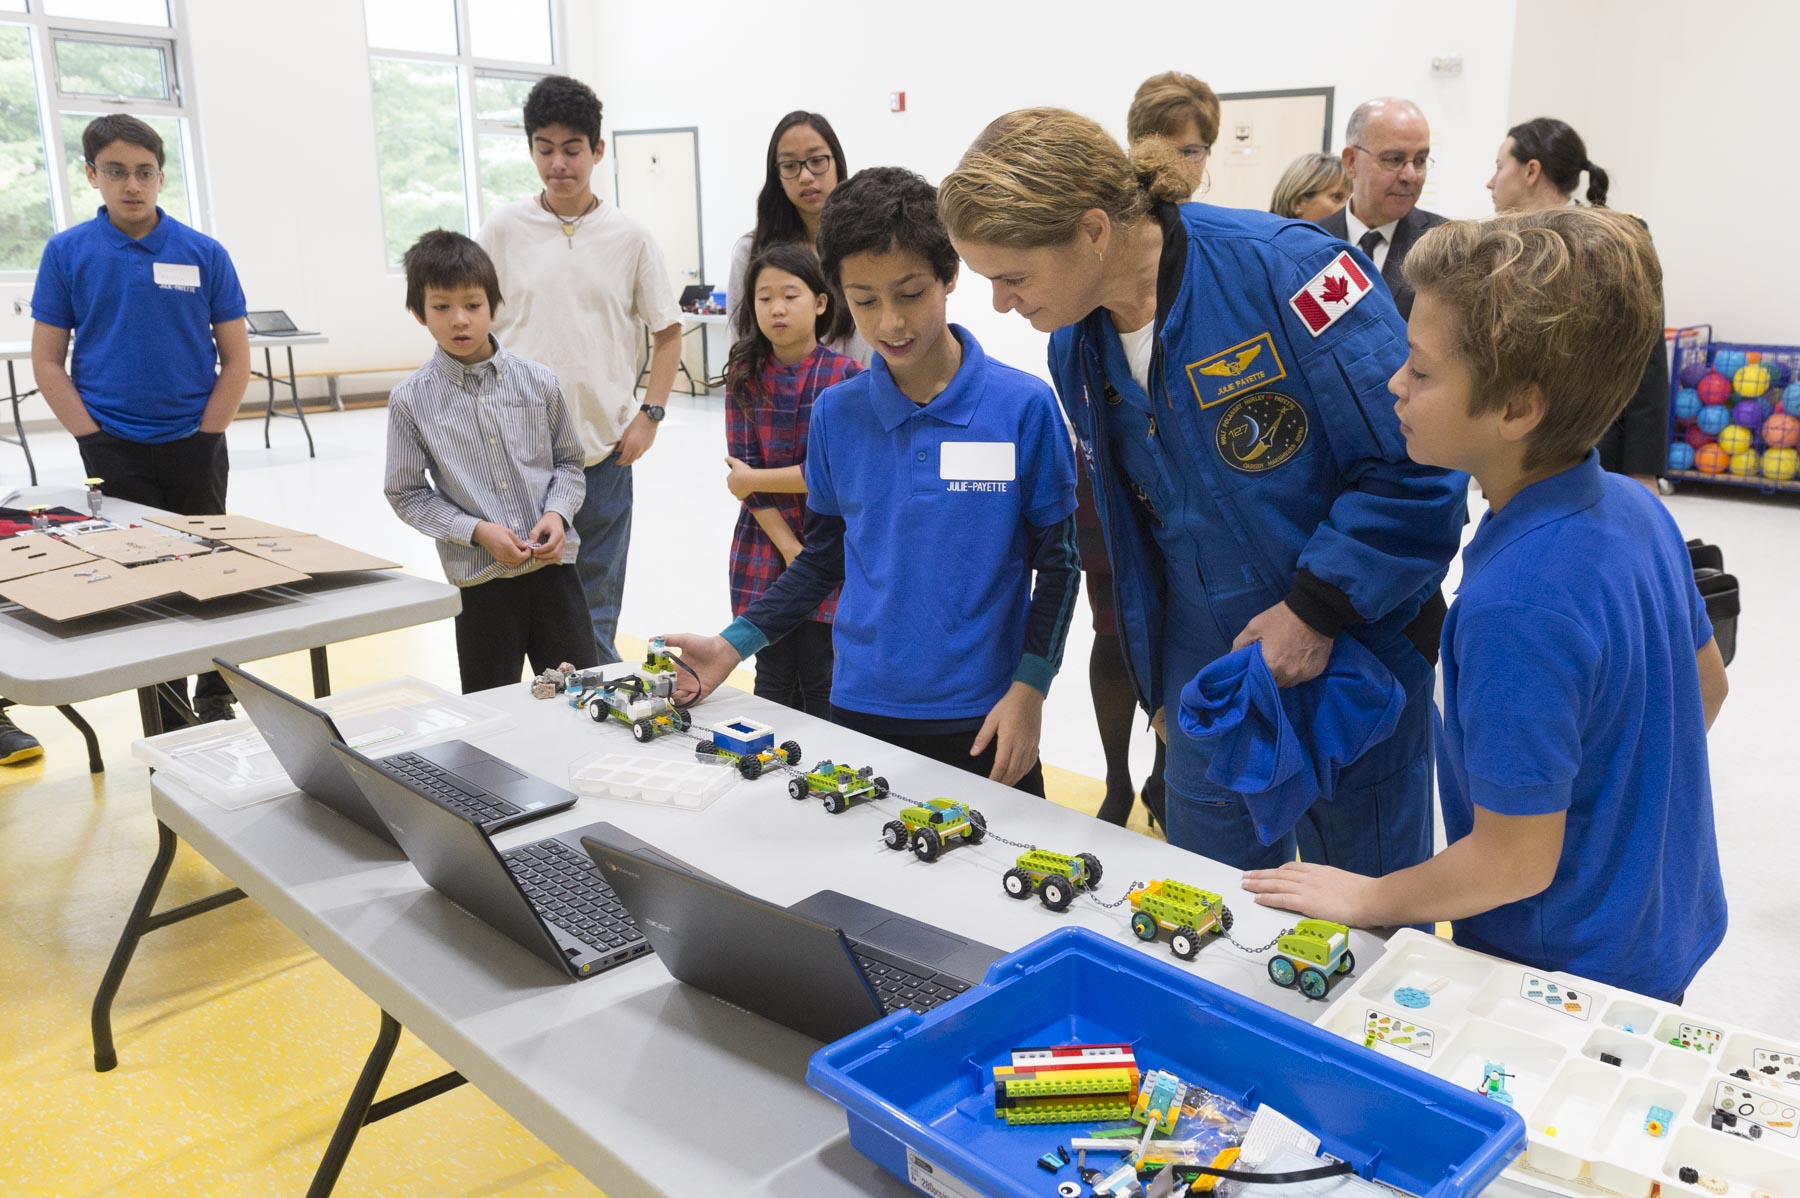 Upon arrival, Her Excellency visited the school's multi-purpose room, where students had the opportunity to present her their robotics projects.